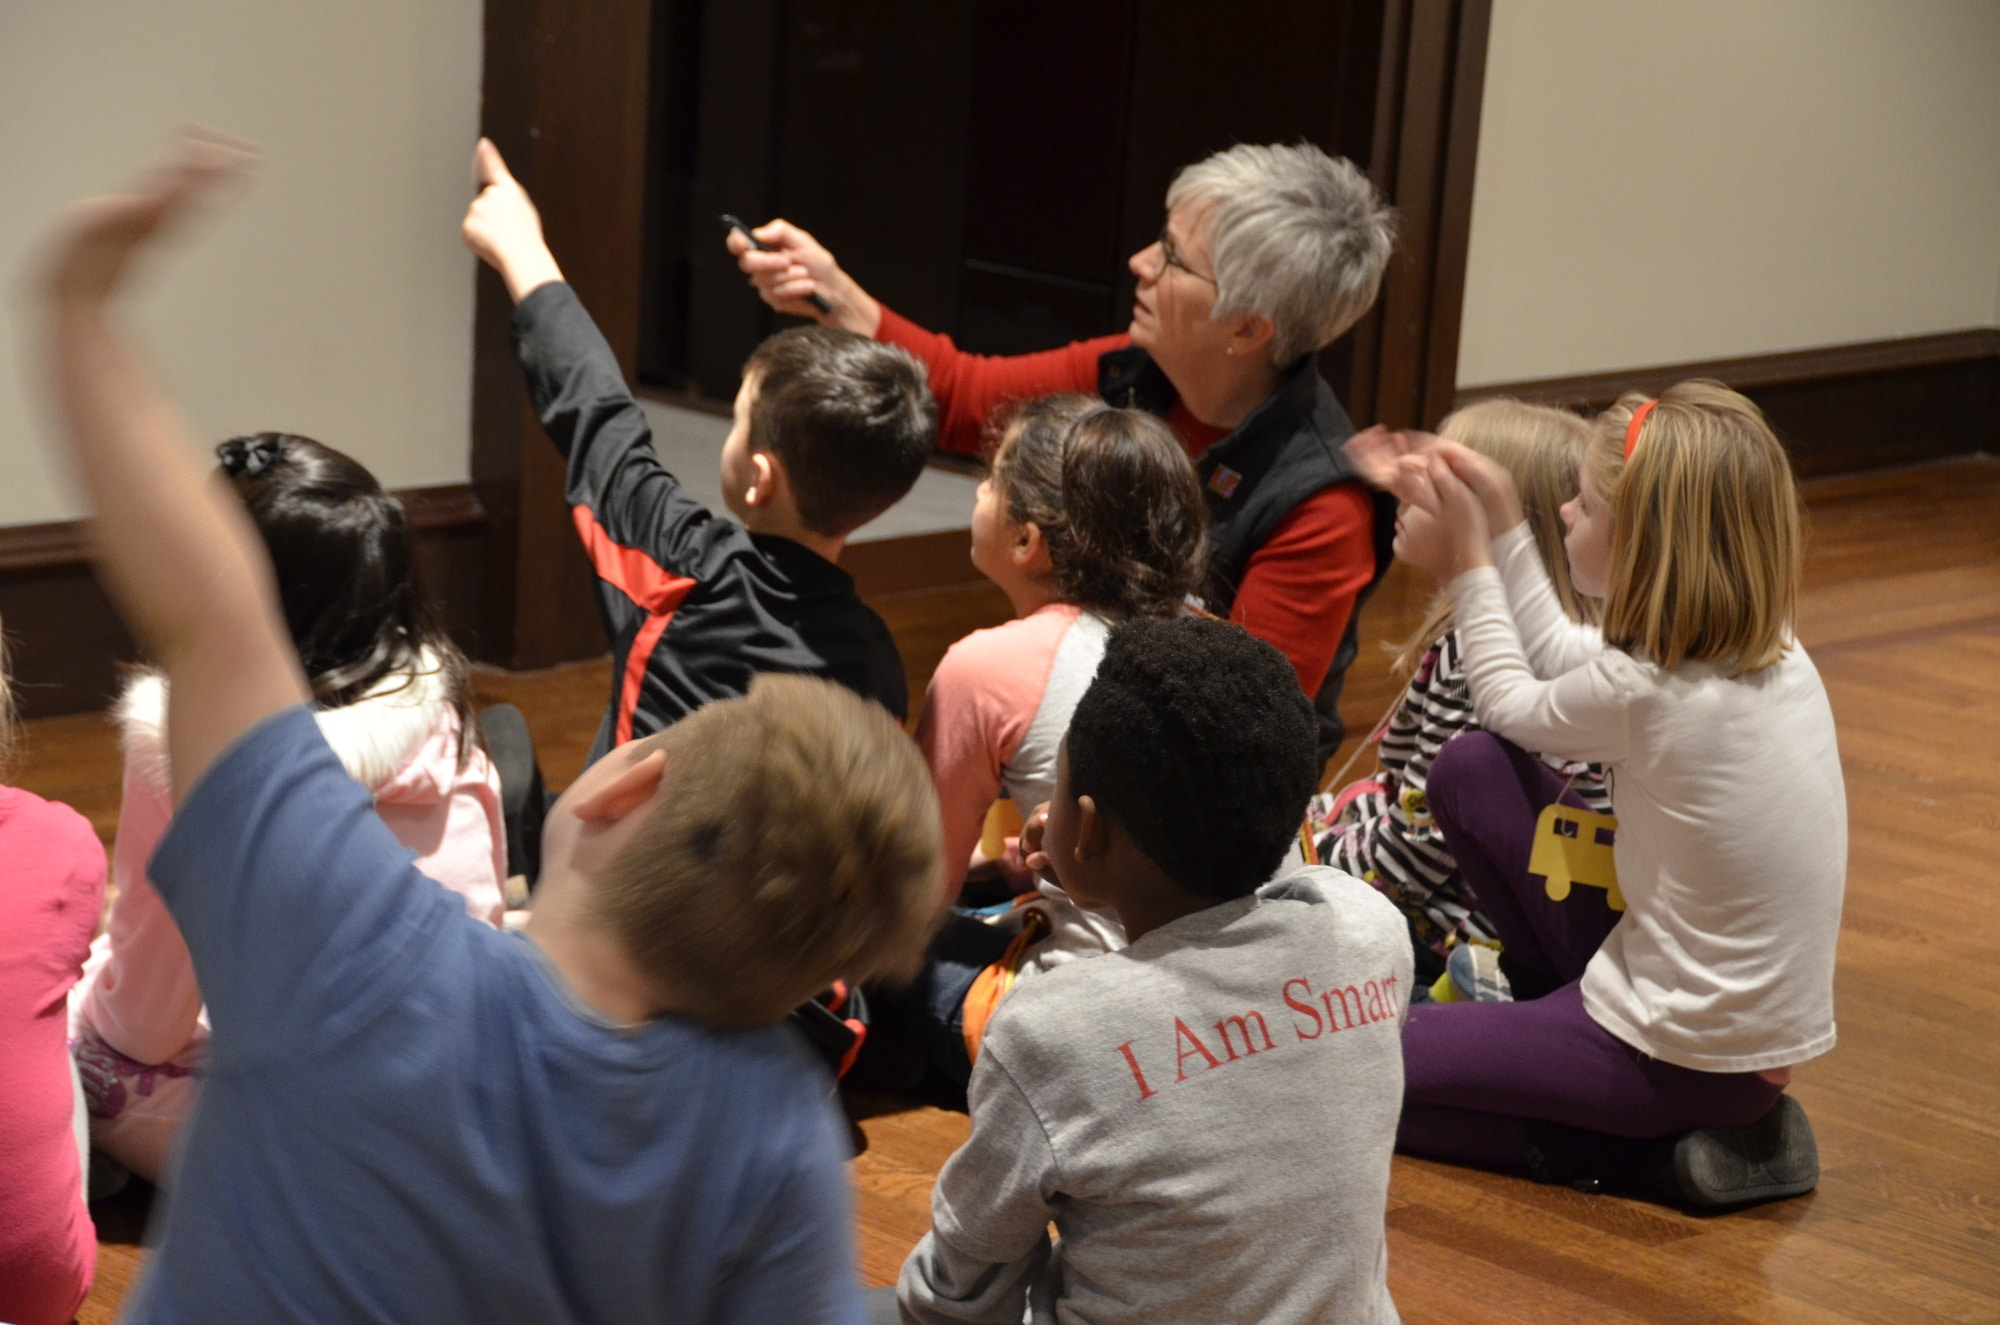 A docent is seen with a group of children seated on the floor, some of whom point in front of them to an artwork.